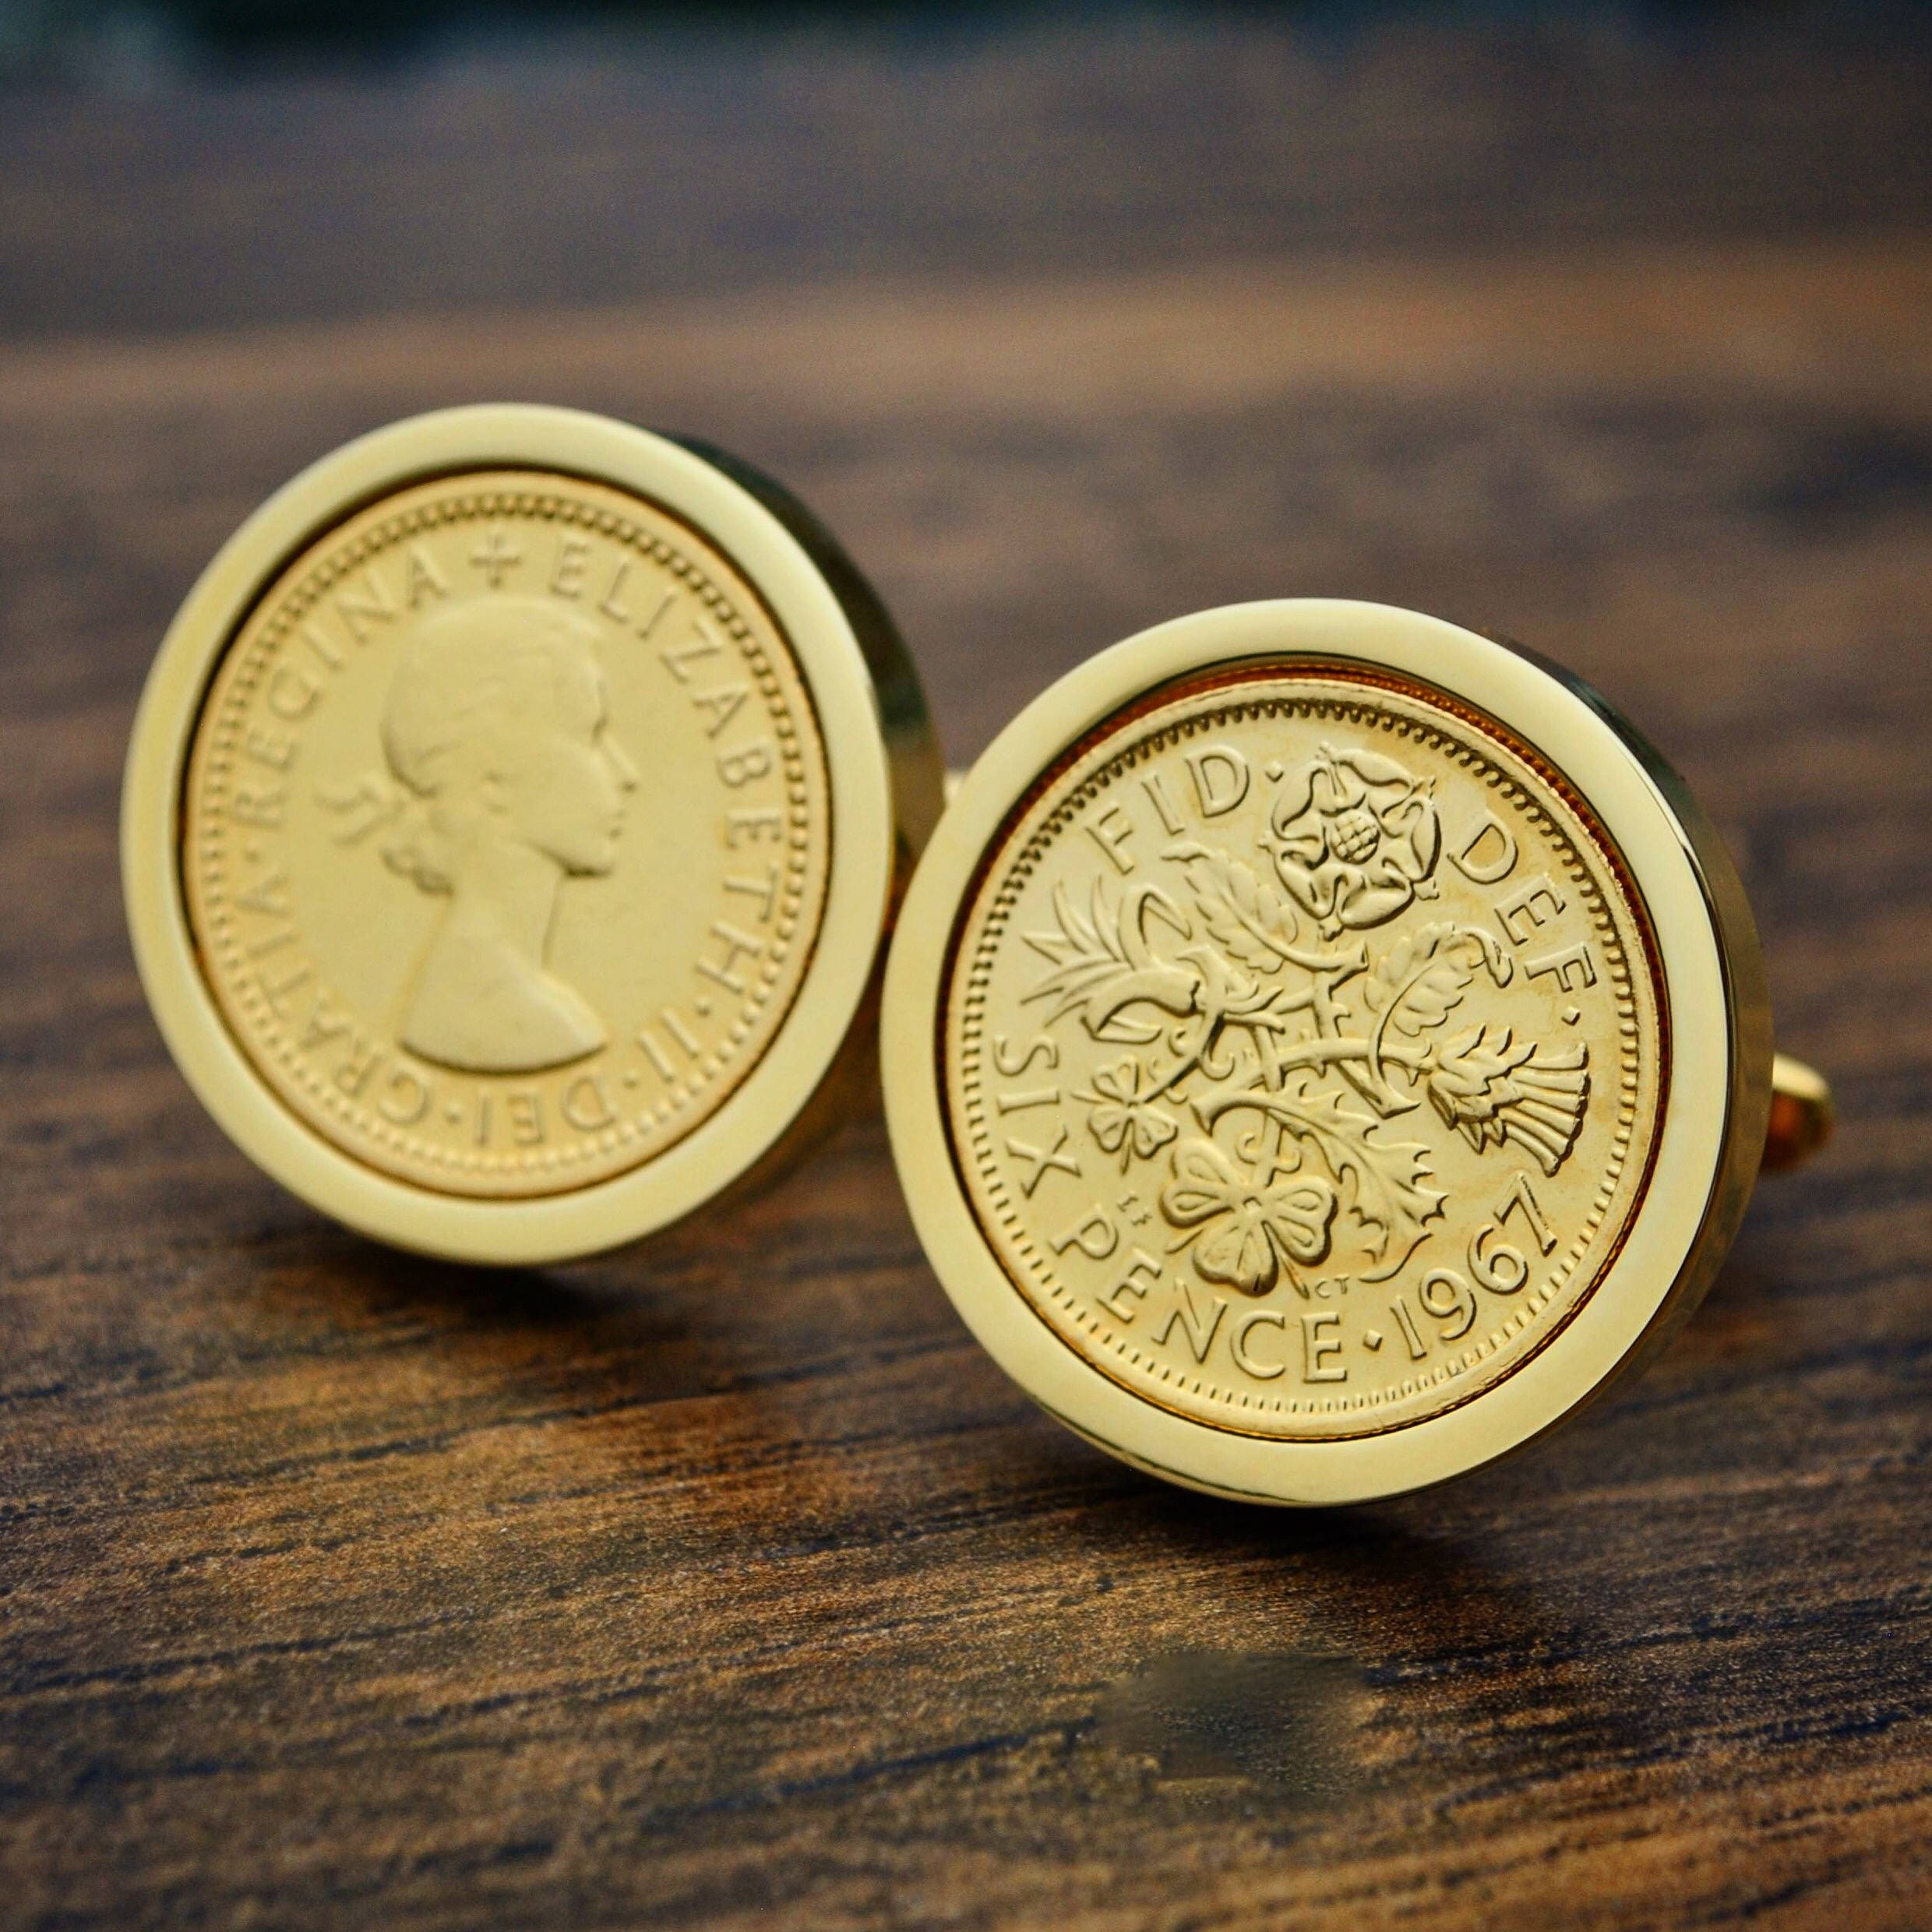 1967 Cufflinks Gold Sixpence Coin Cufflinks Golden Wedding